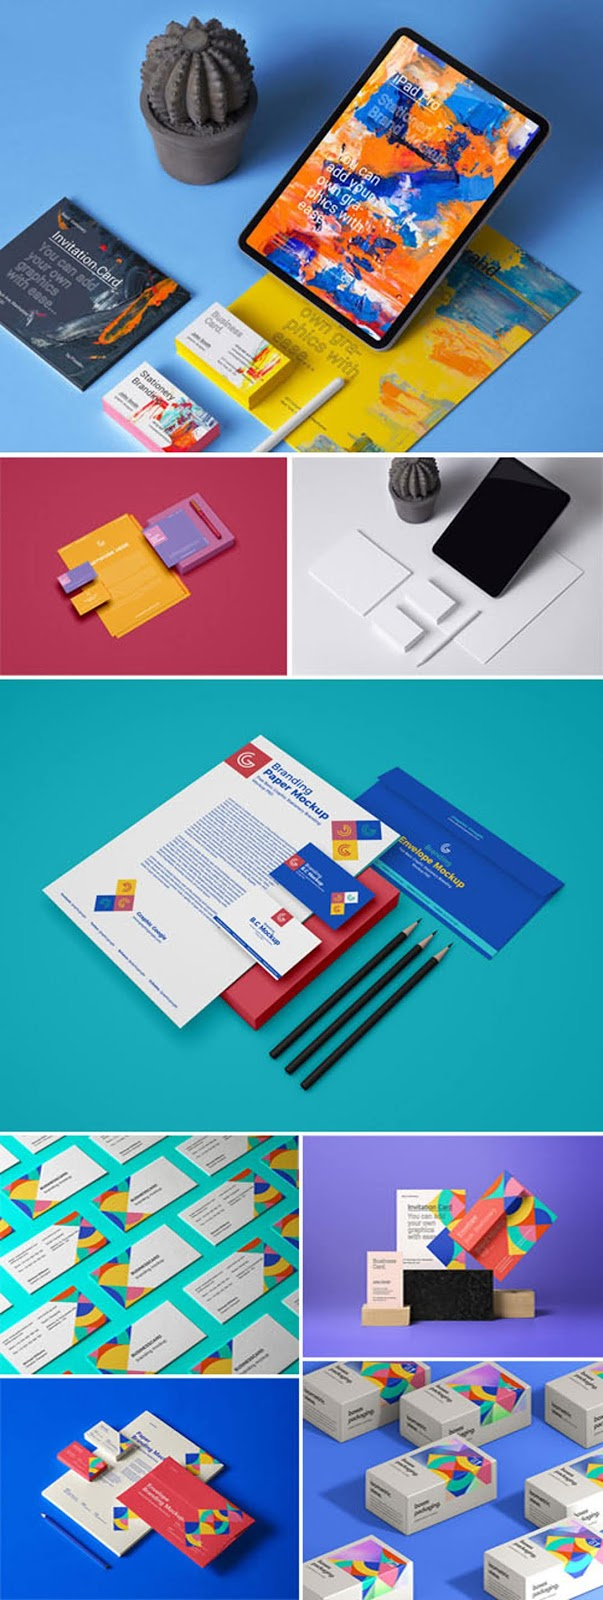 Branding Stationery PSD Mockups Collection 2